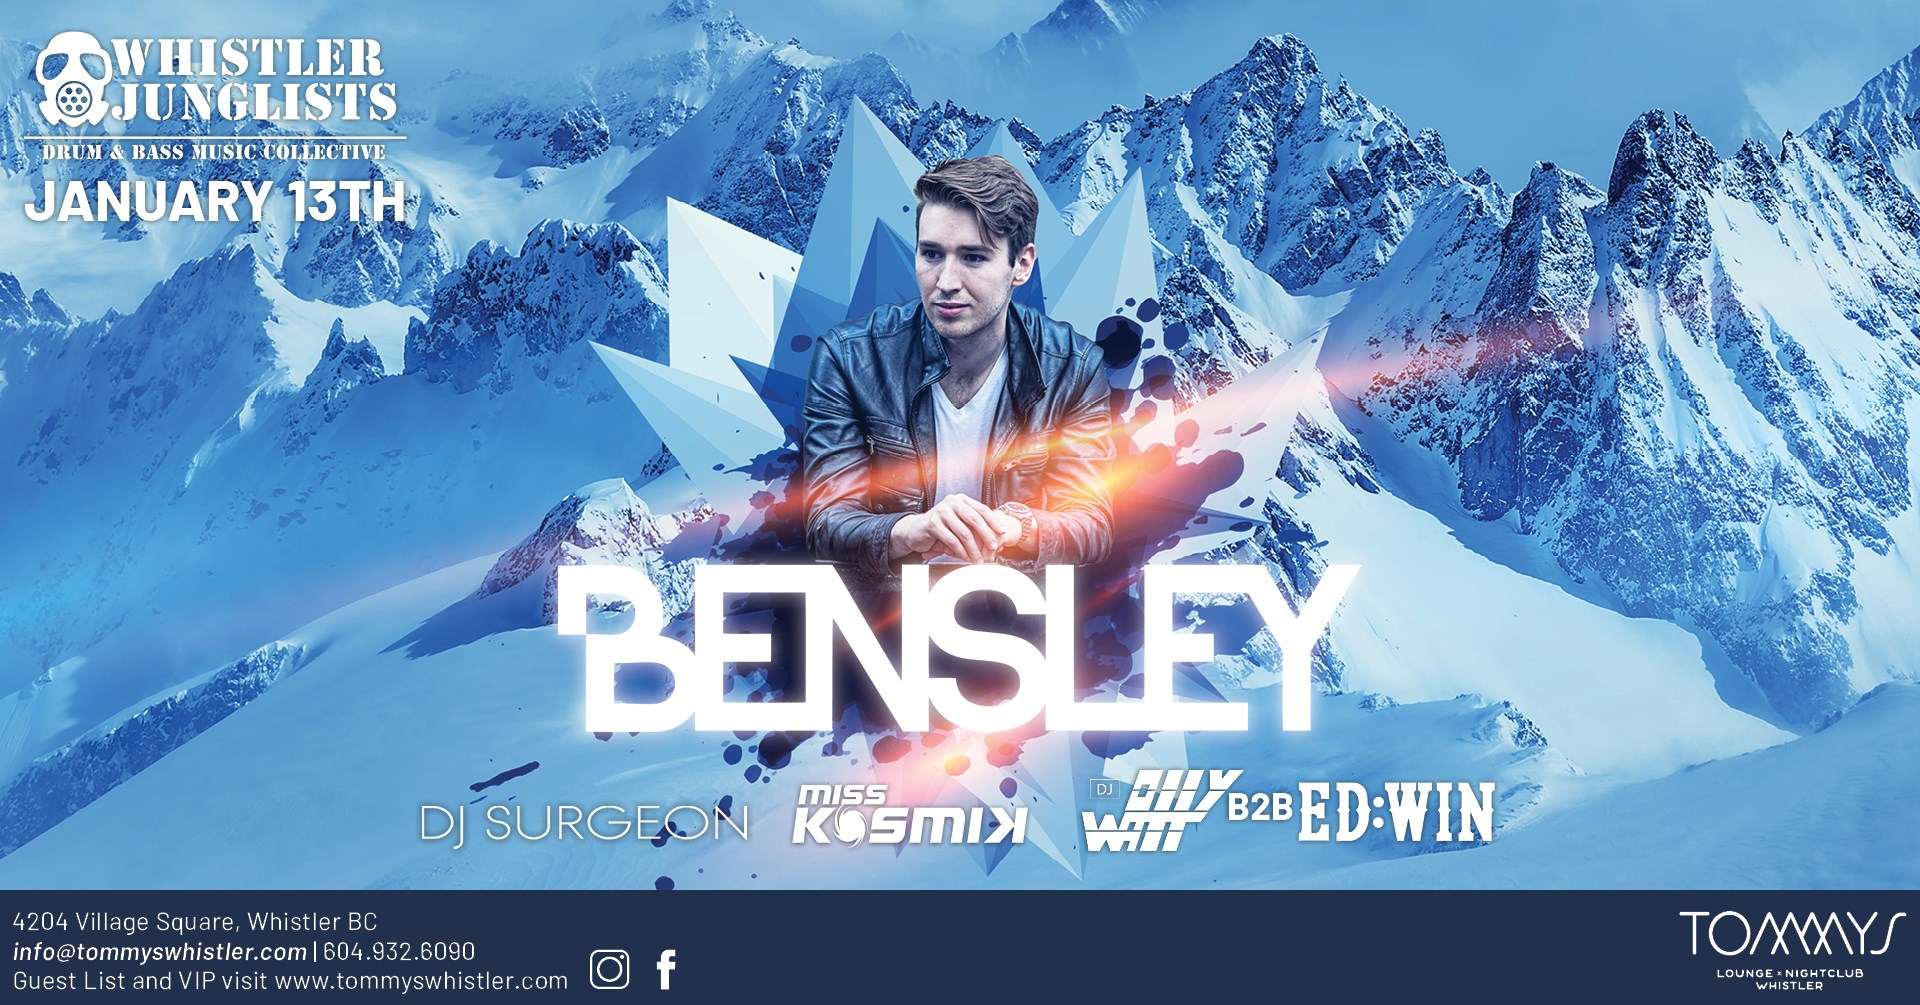 Bensley at Tommys Whistler January 12, 2020